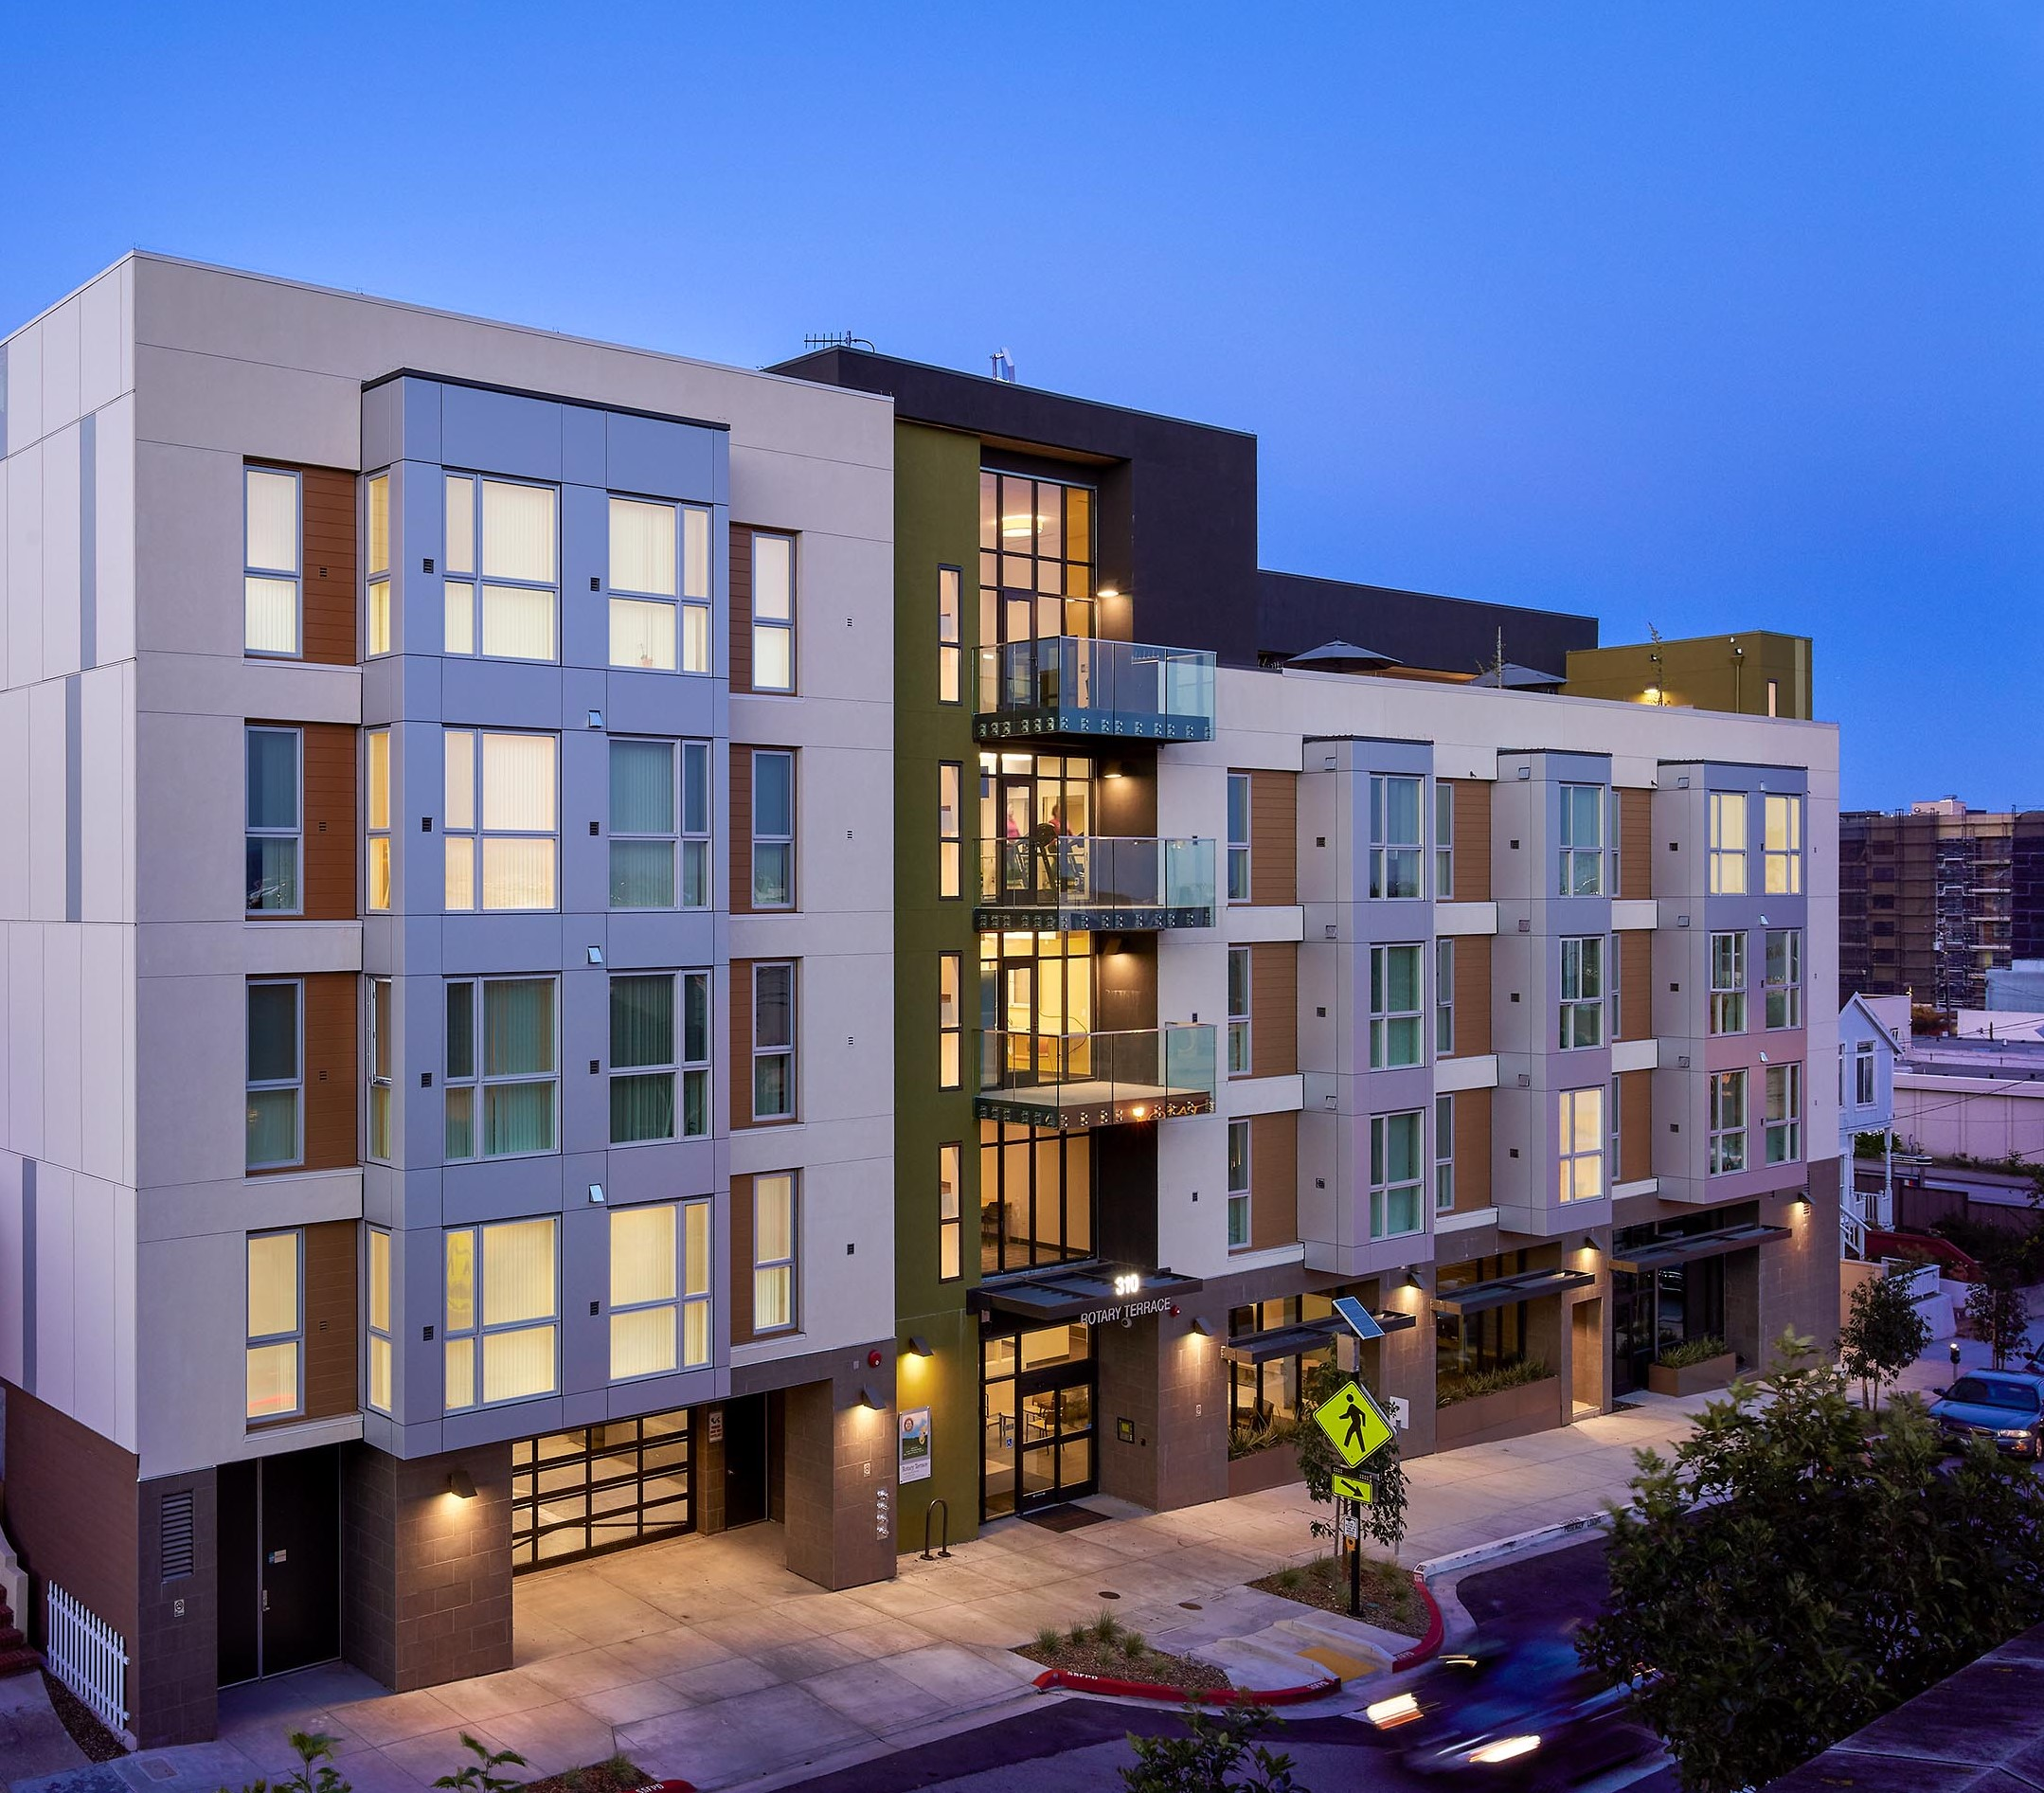 Low Income Apartments In South San Francisco, CA